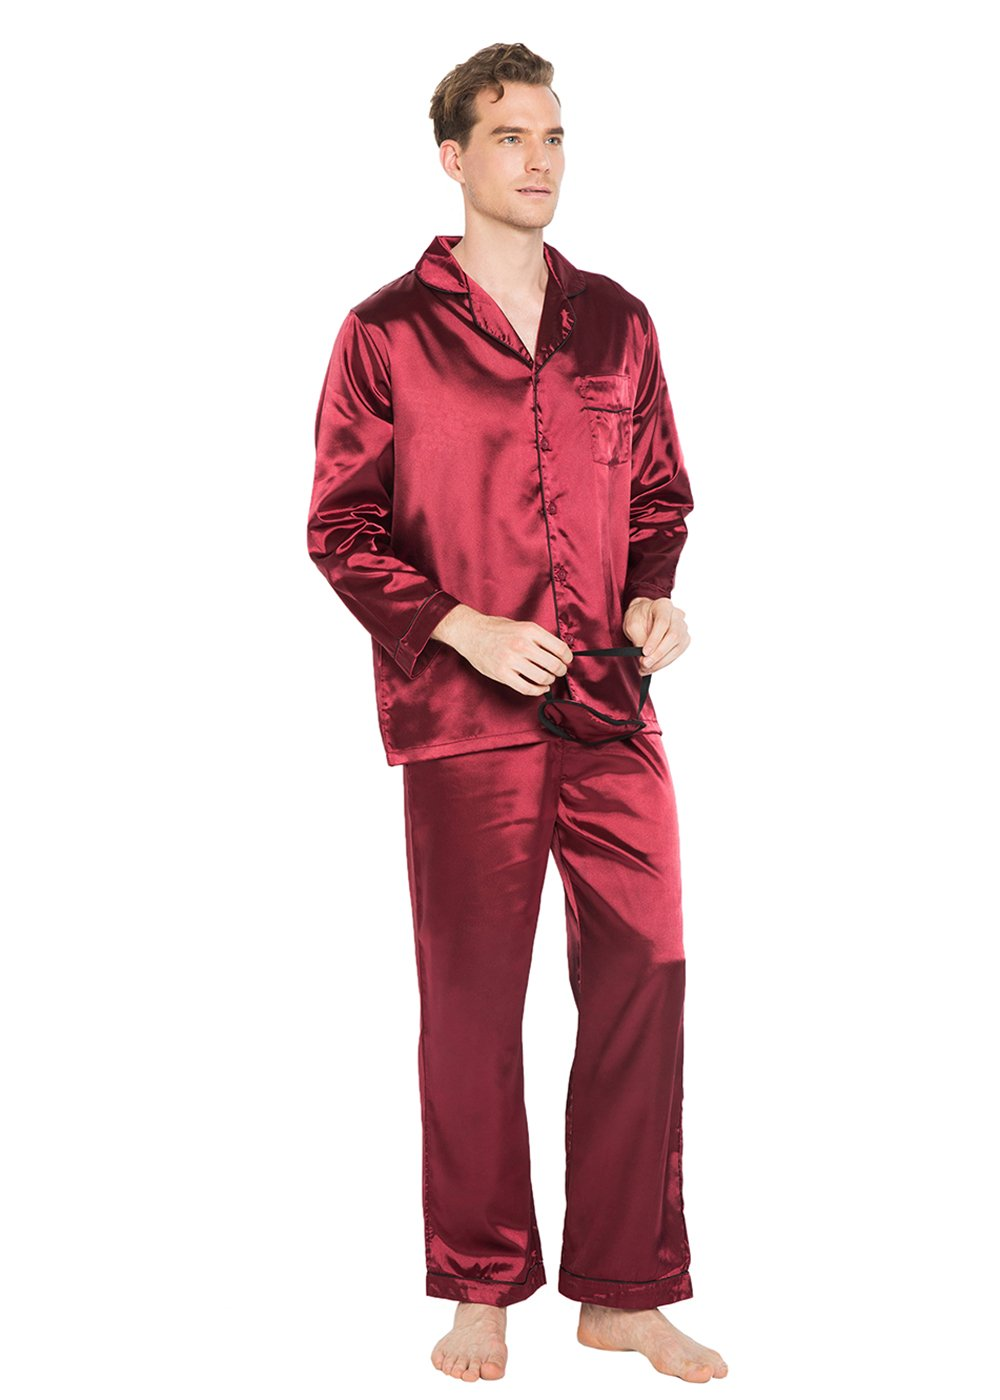 Like2sea Silky Satin Nightshirt Men, Long Lightweight Pajamas, WineRed M